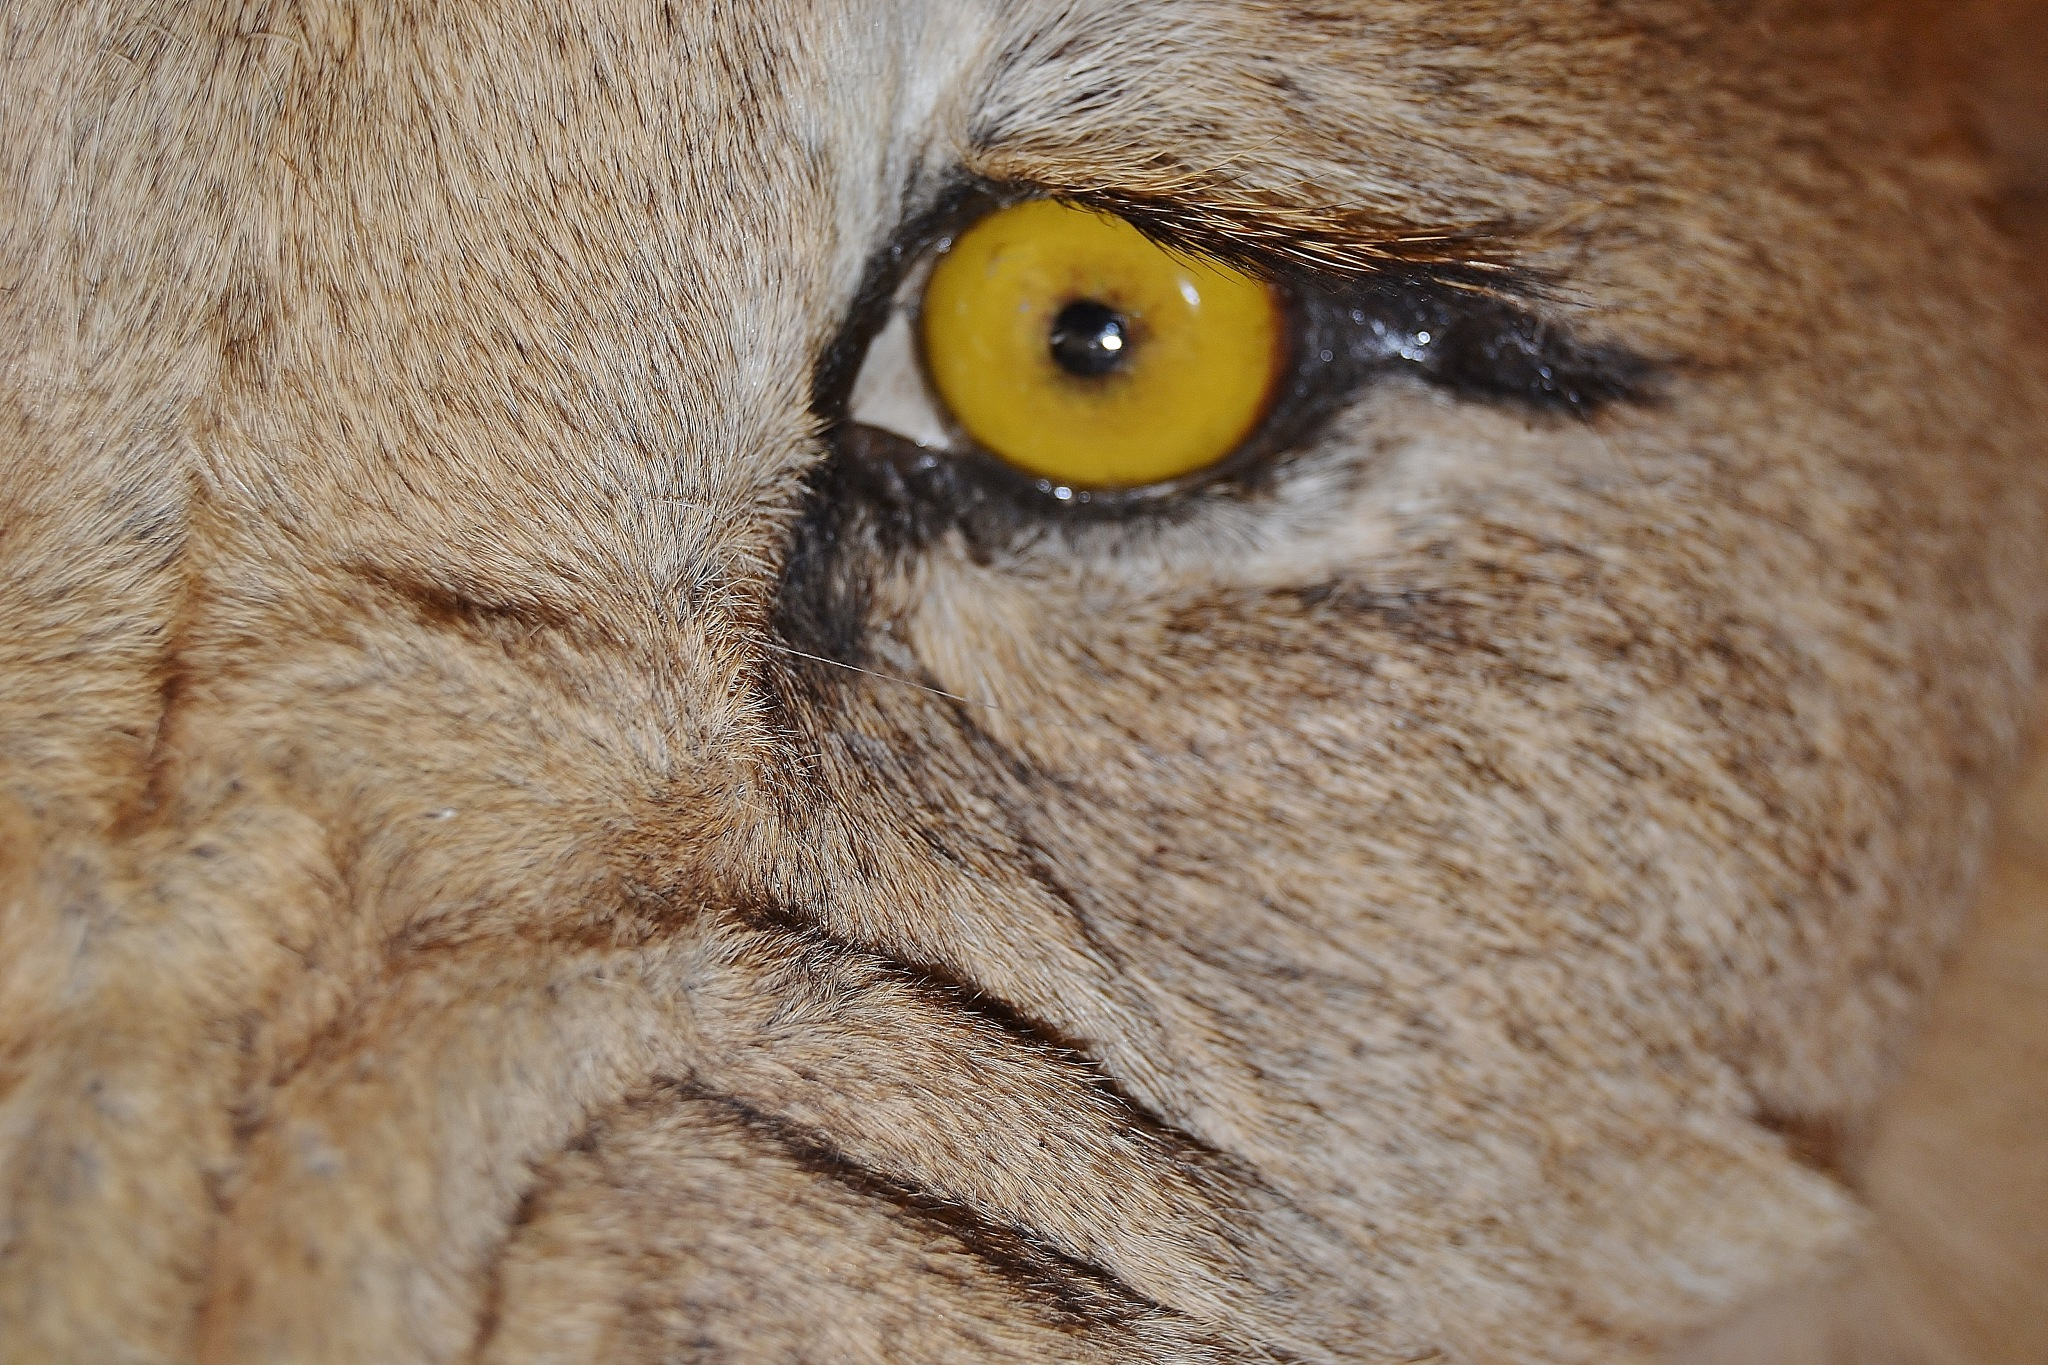 Eye of the Lion by stefan.andersson3